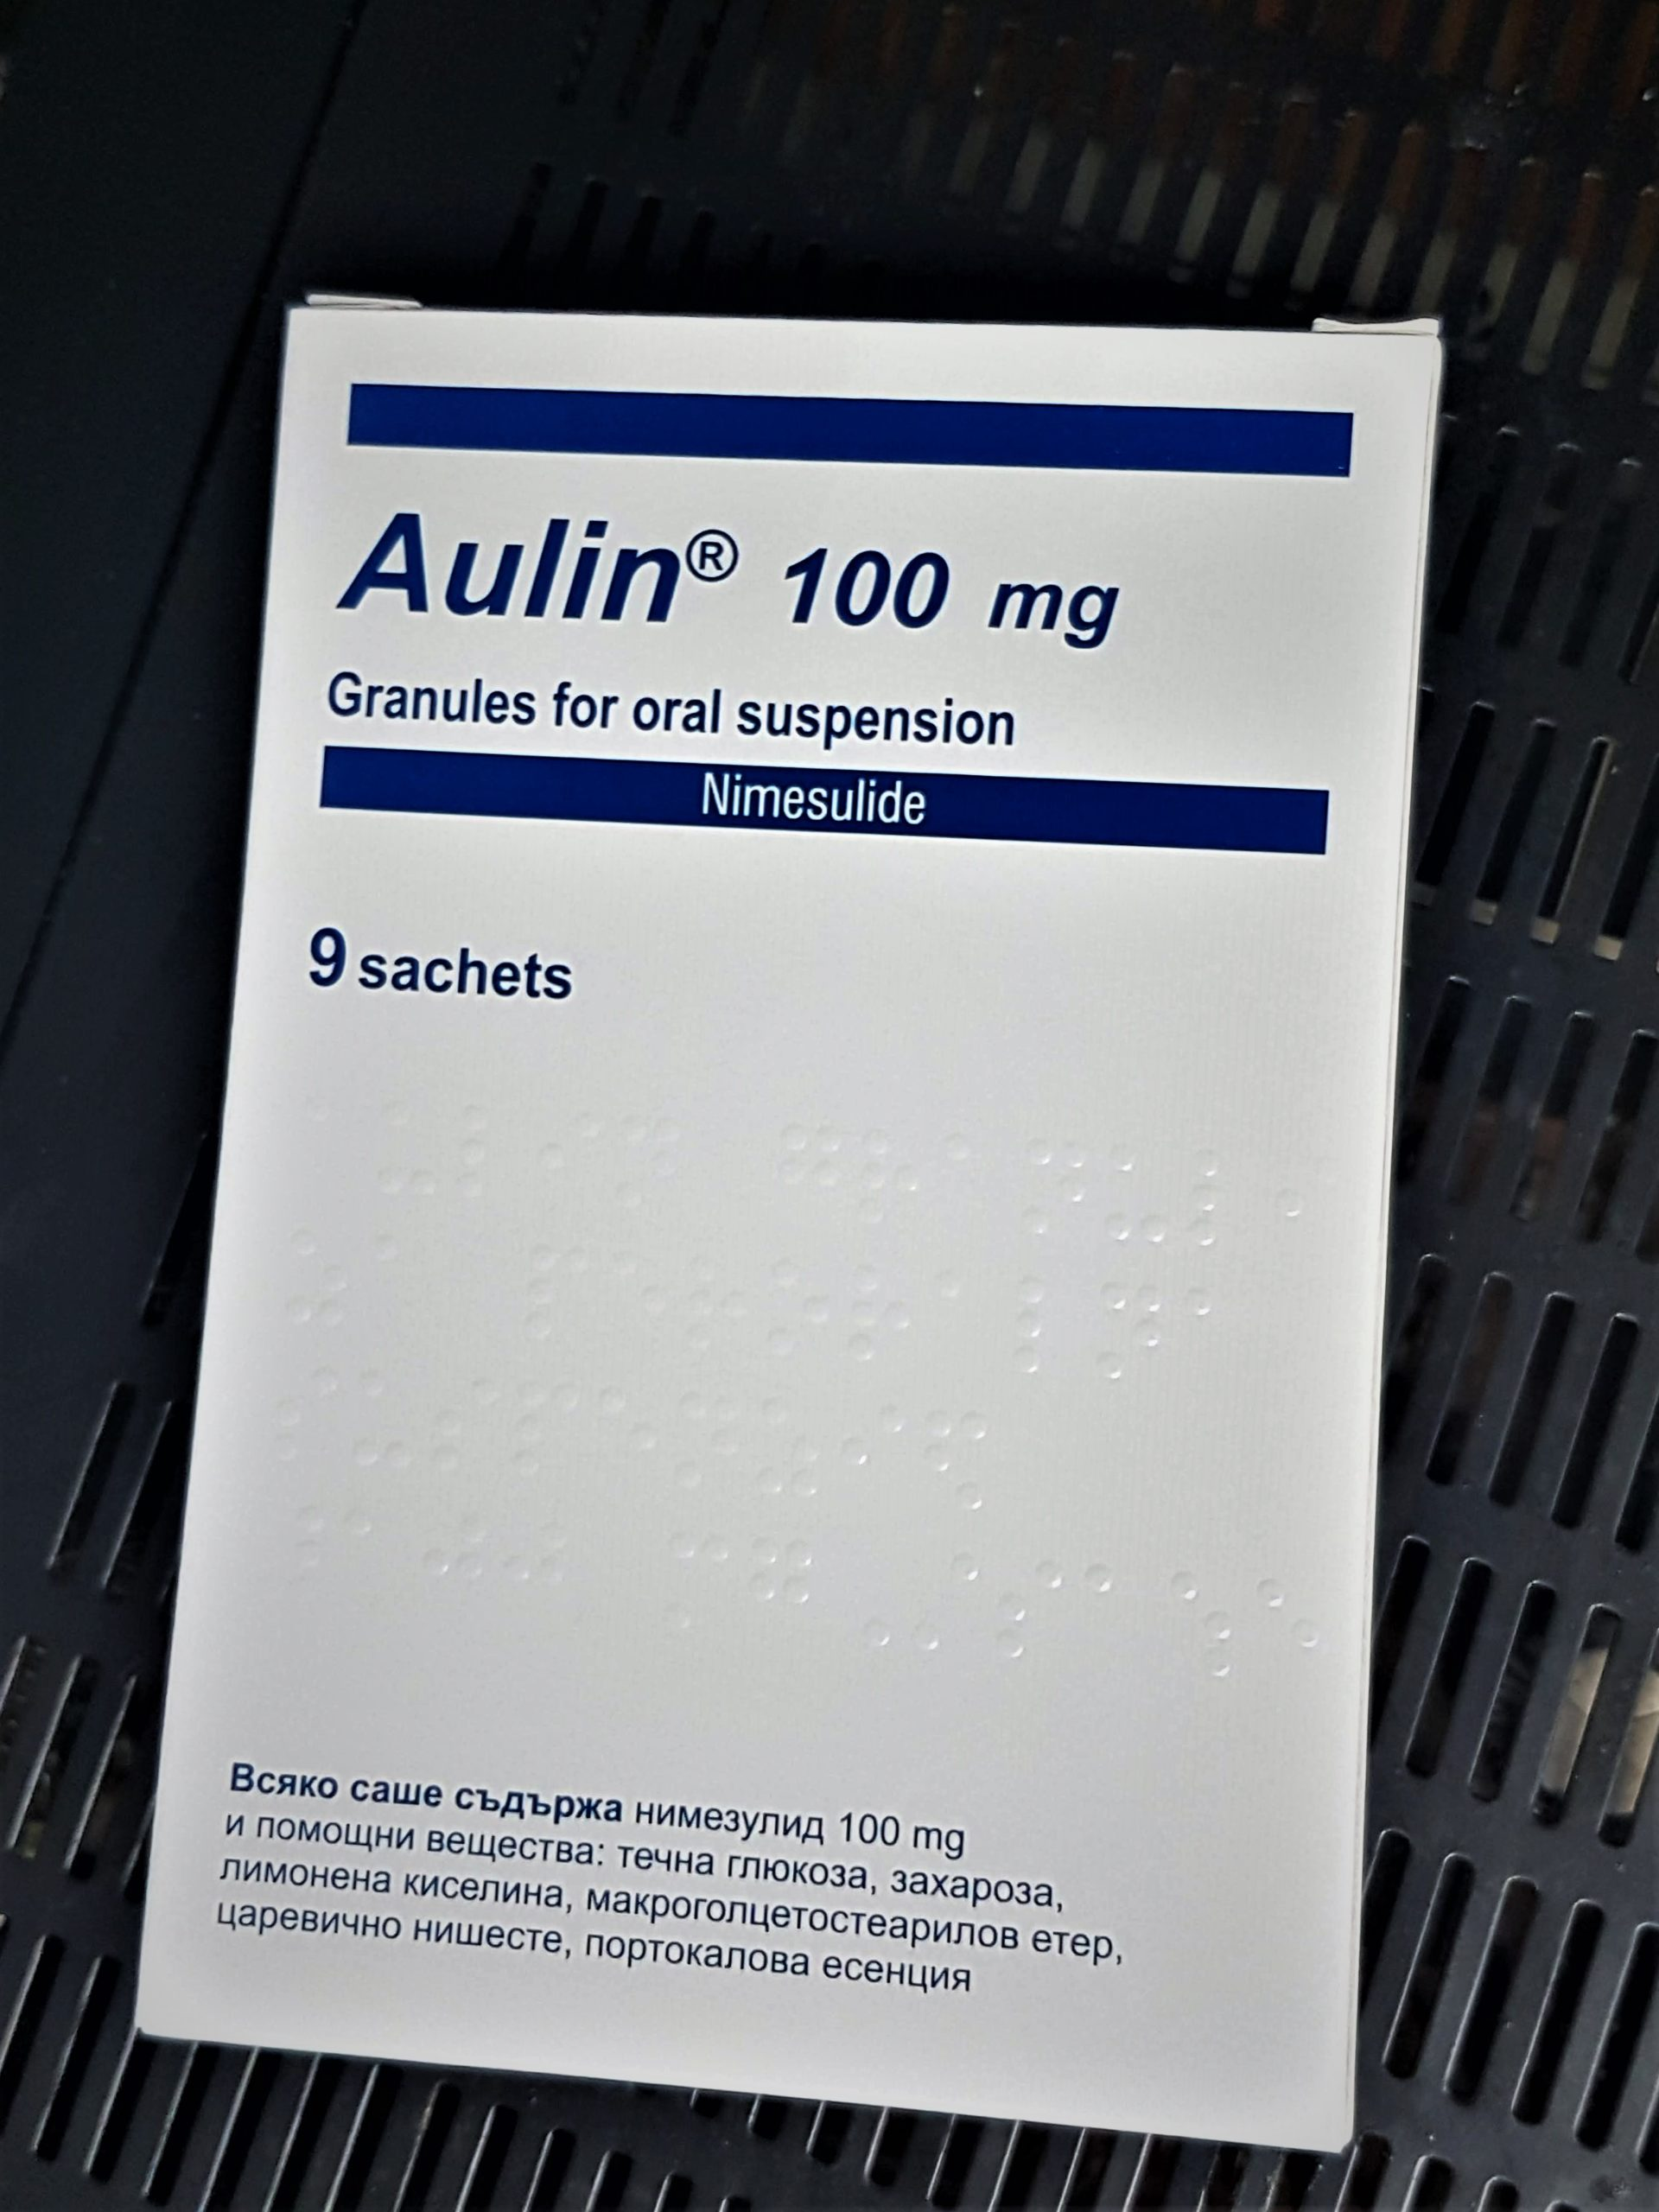 Aulin 100 mg (Nimesulide) granules for oral suspension /9 sashets in Box/ –  Expodrugs